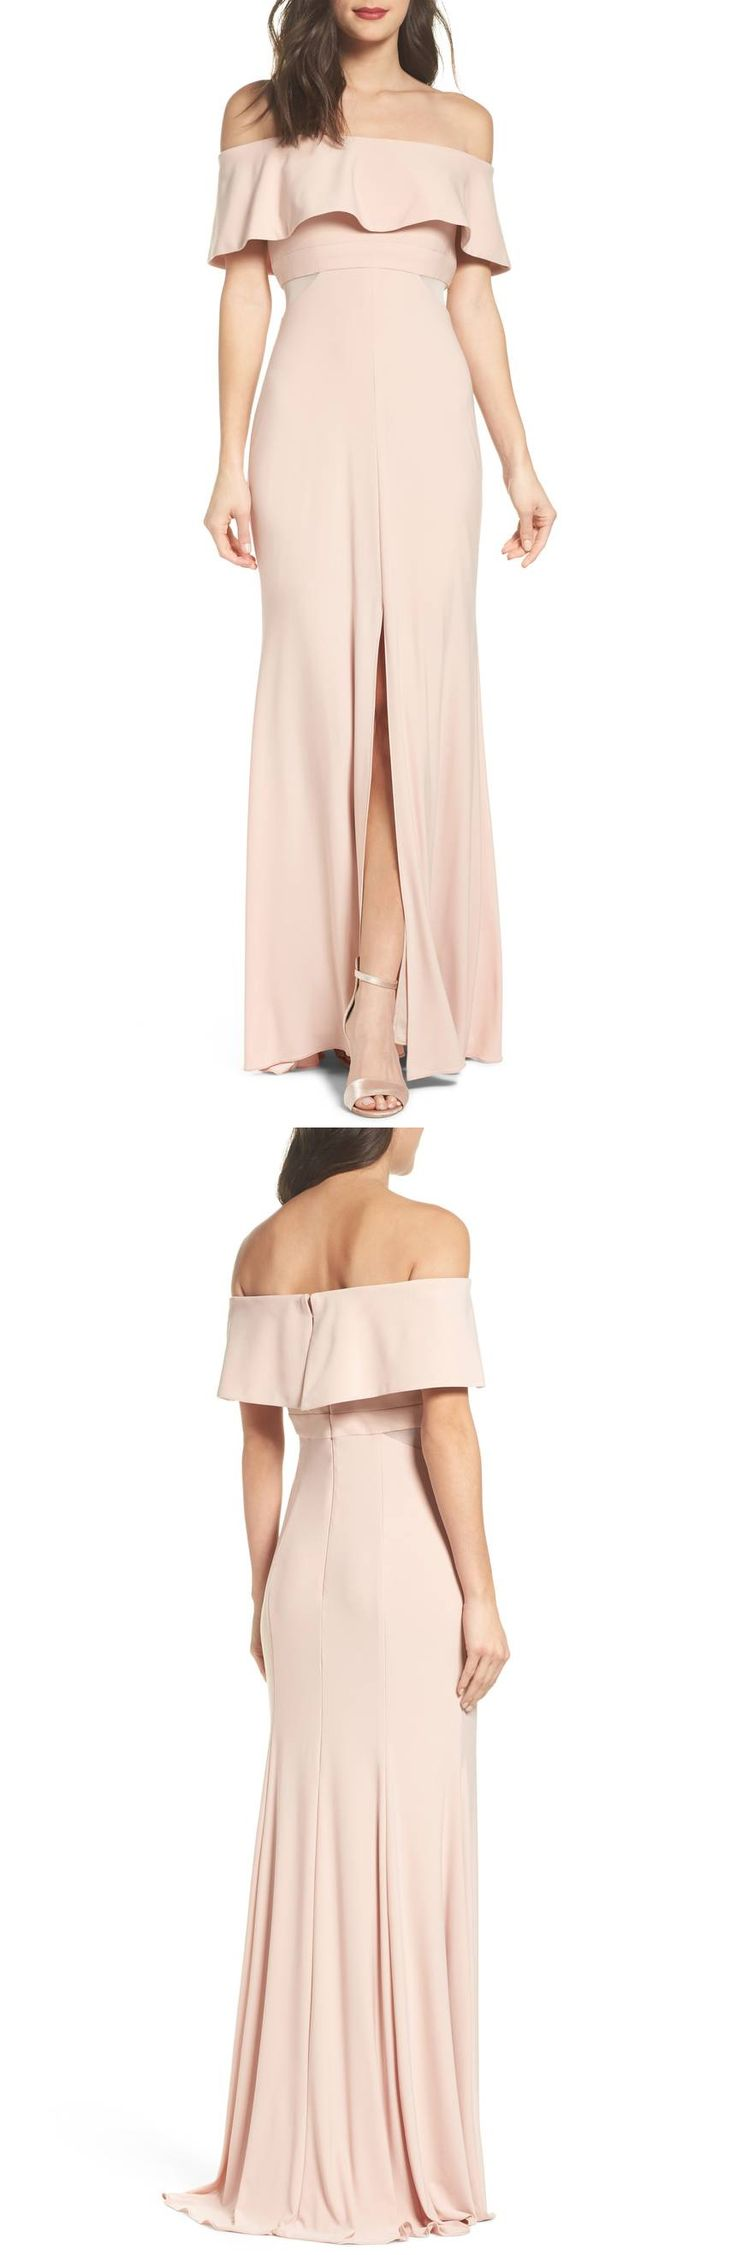 Jersey Popover Gown by Xscape #dress  #formaldress #formalgown #eveninggown #fashion #womensfashion formal dress | formal dresses for teens |  Formal Dresses | formal dress |  Formal Dresses | Formal Dress Outfits |